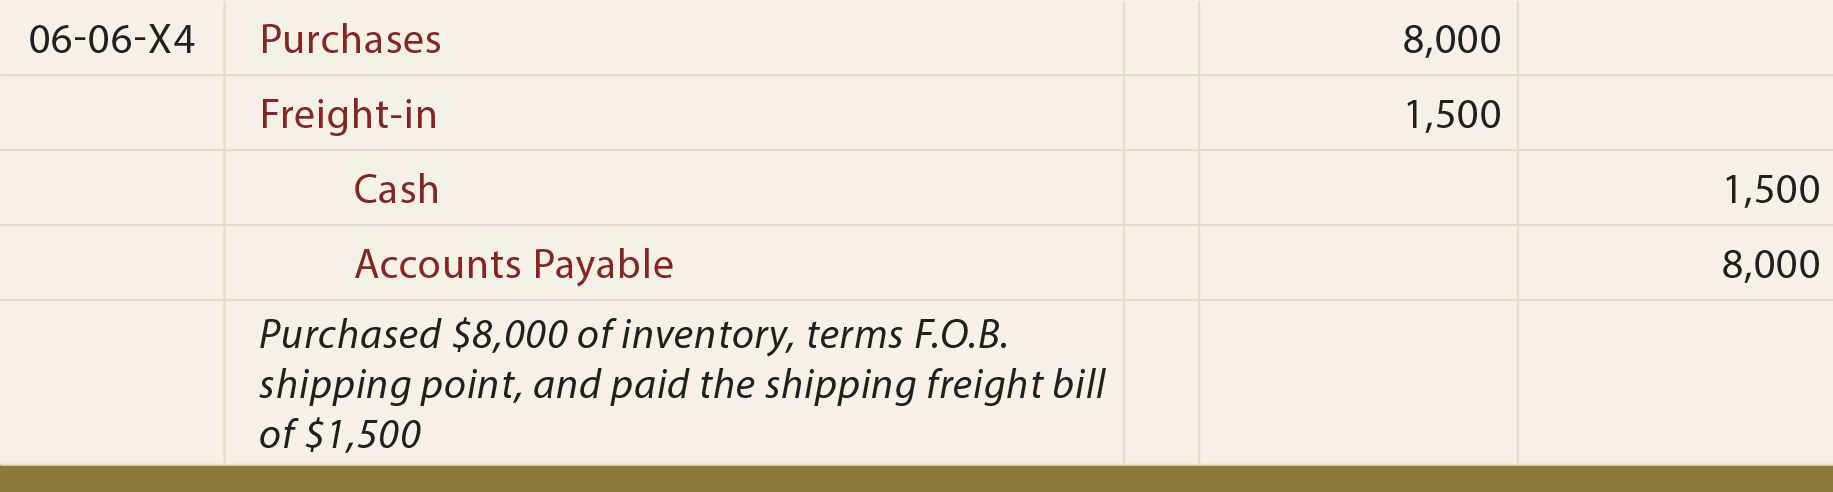 Freight General Journal Entry - F.O.B. shipping point